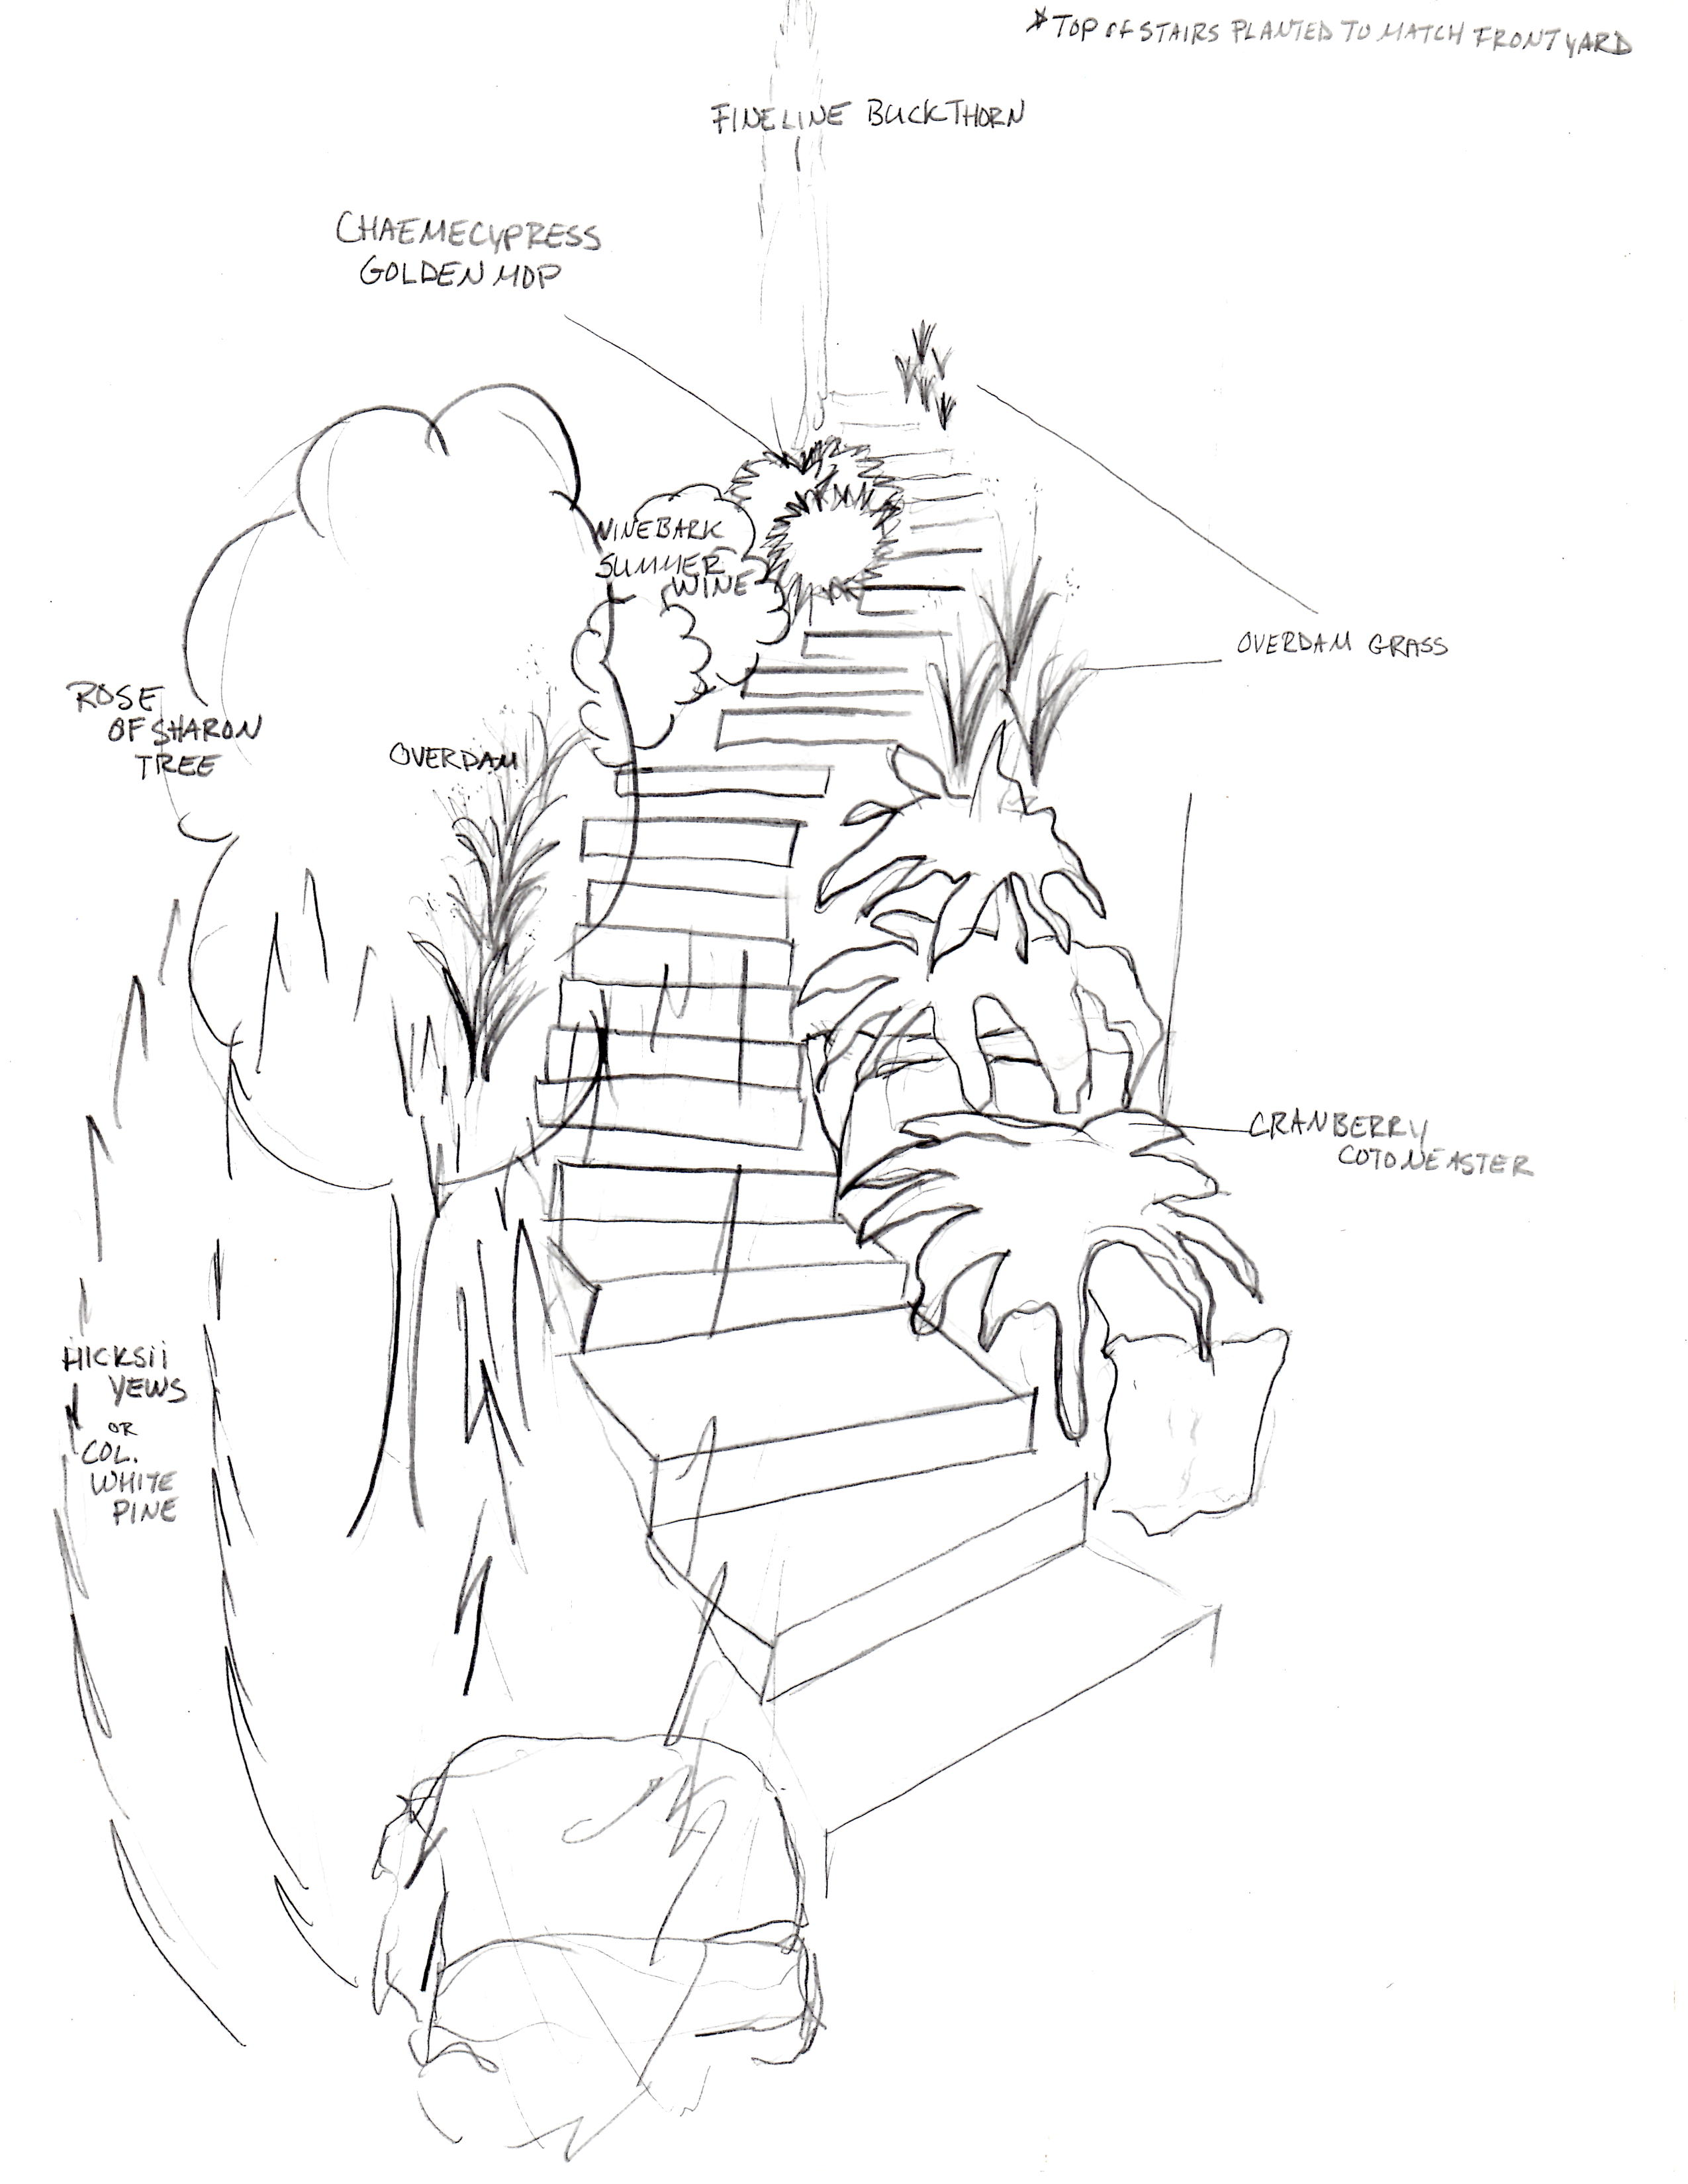 Landscape Design Drawing at GetDrawings com | Free for